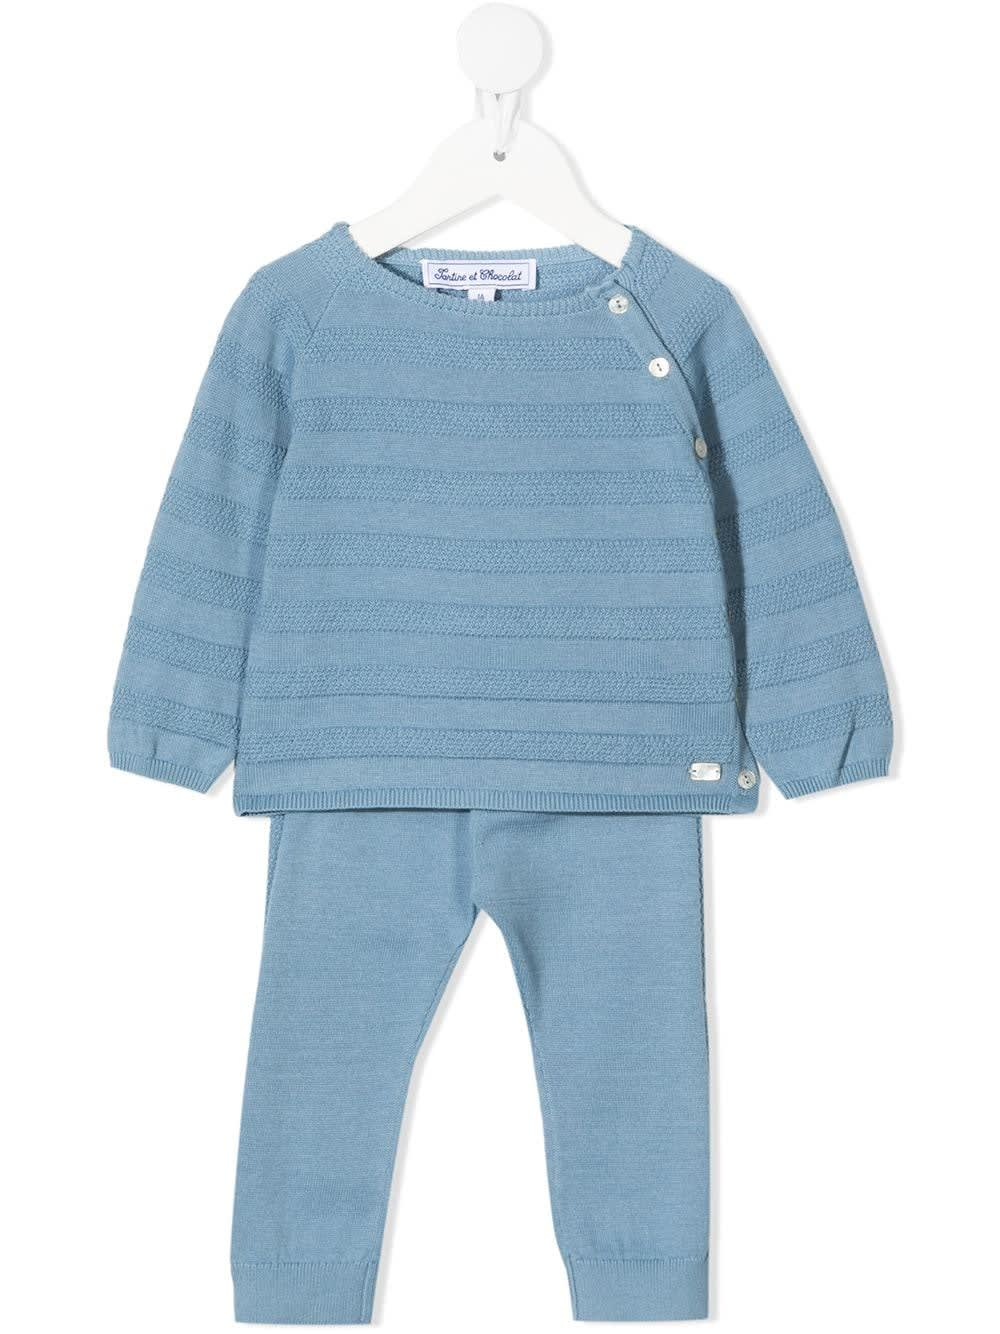 Tartine Et Chocolat Tracksuits COORDINATED LIGHT BLUE COTTON SWEATER AND TROUSERS SUIT